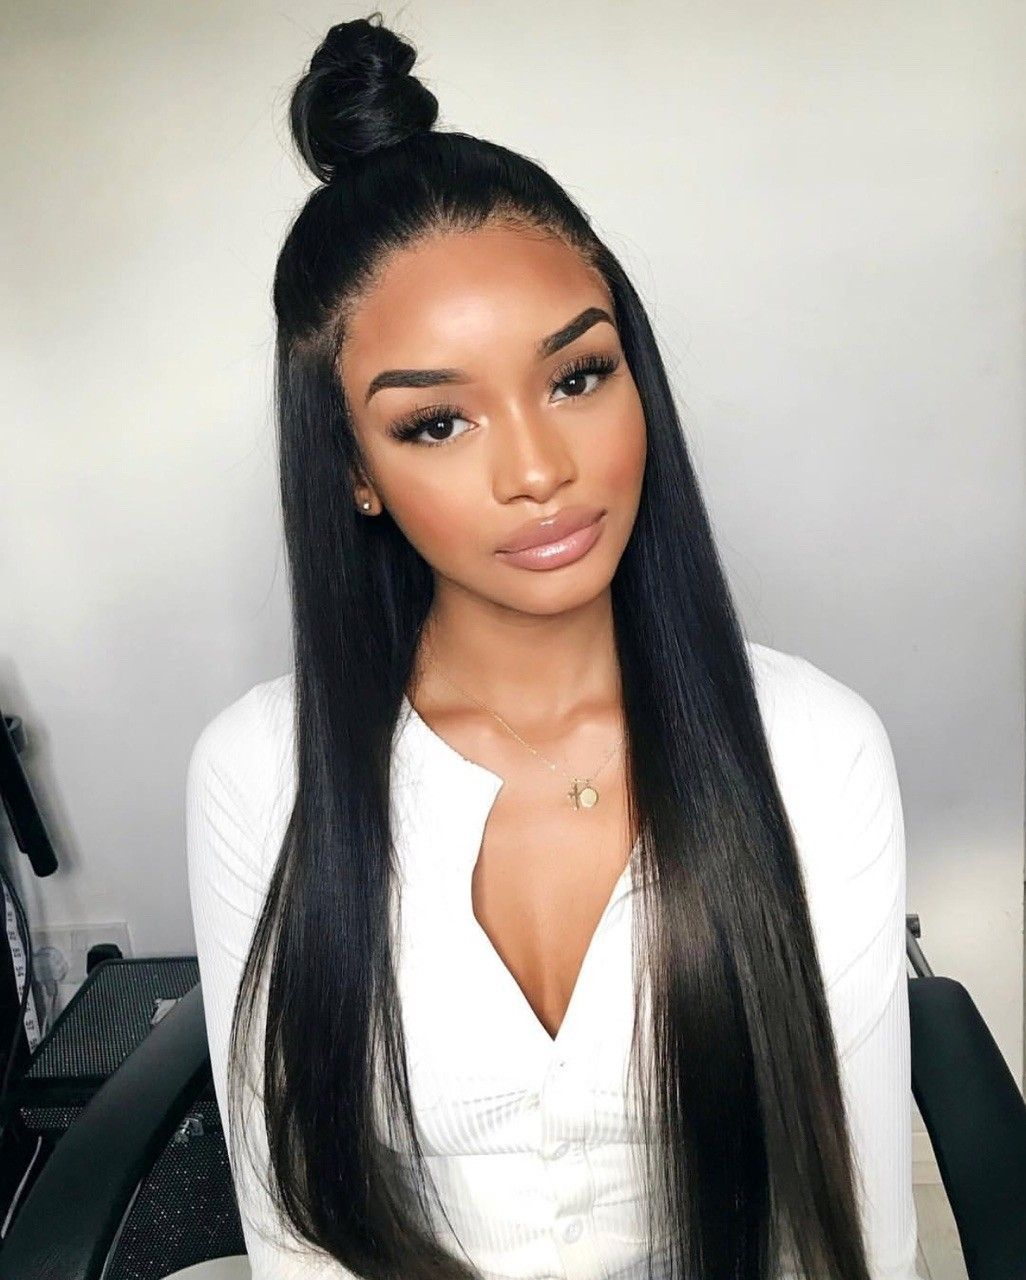 Pin By Cxsxg On Flawless Hair Pinterest Cabello Pelo